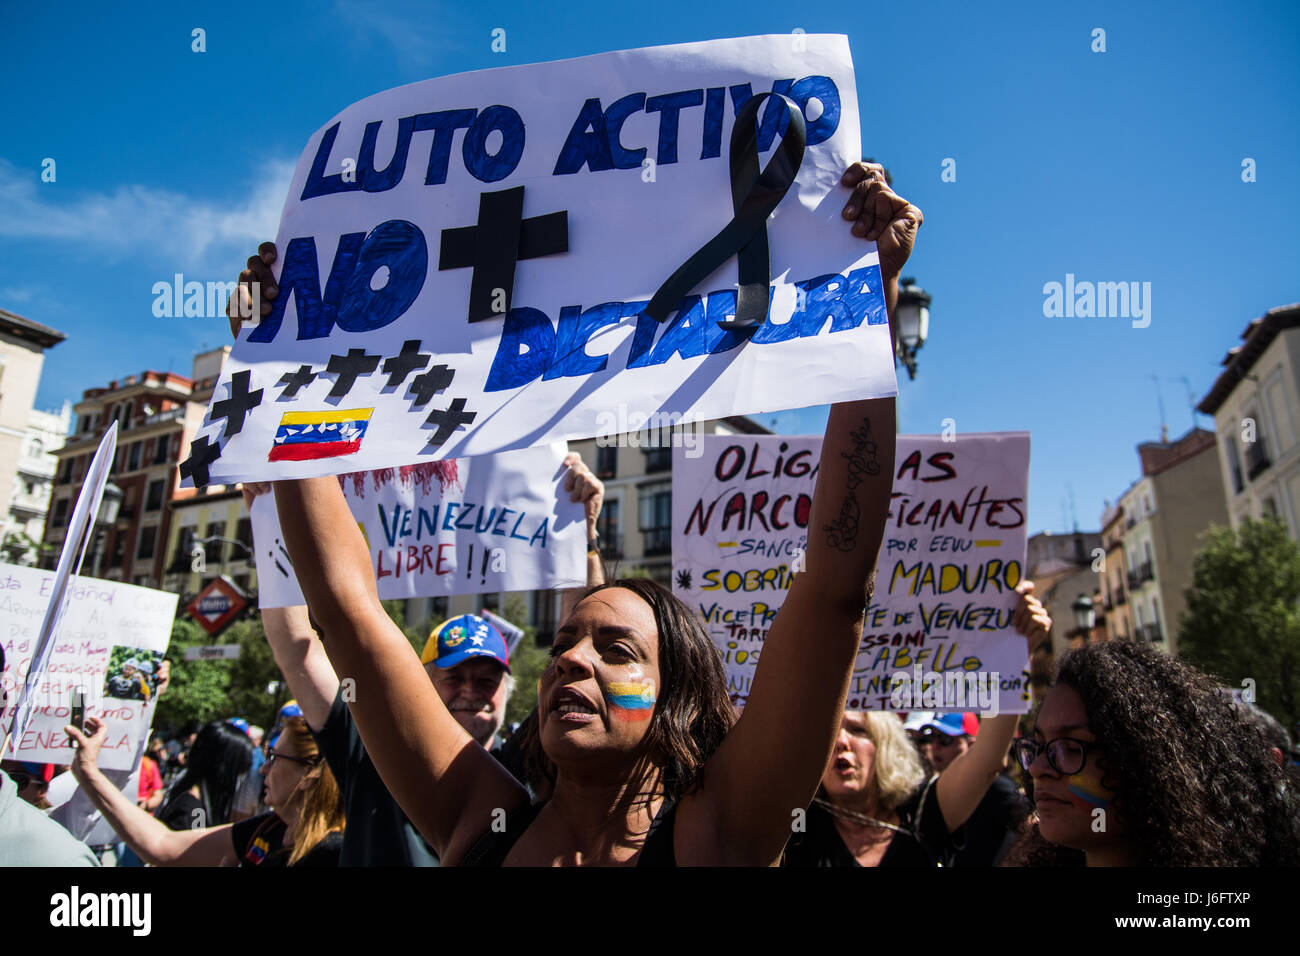 Madrid, Spain. 20th May, 2017. Venezuelan woman protesting with placard against Nicolas Maduro. Credit: Marcos del Stock Photo